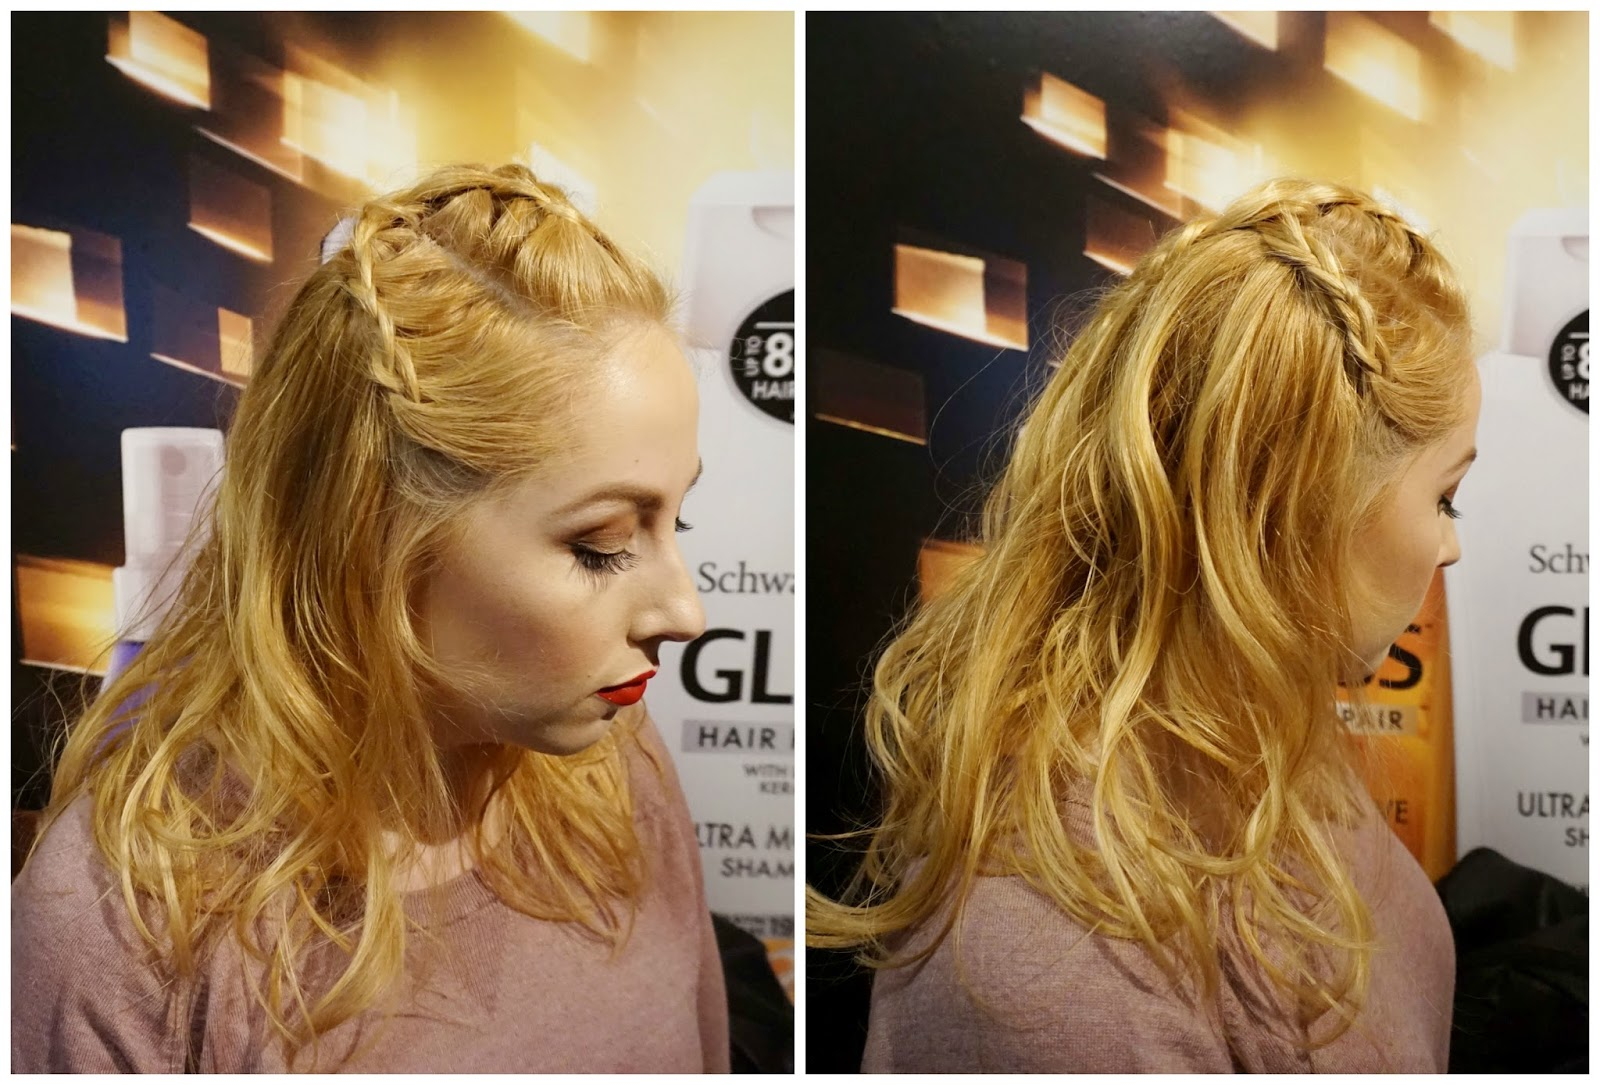 gliss hair toronto launch 2017 schwarzkopf